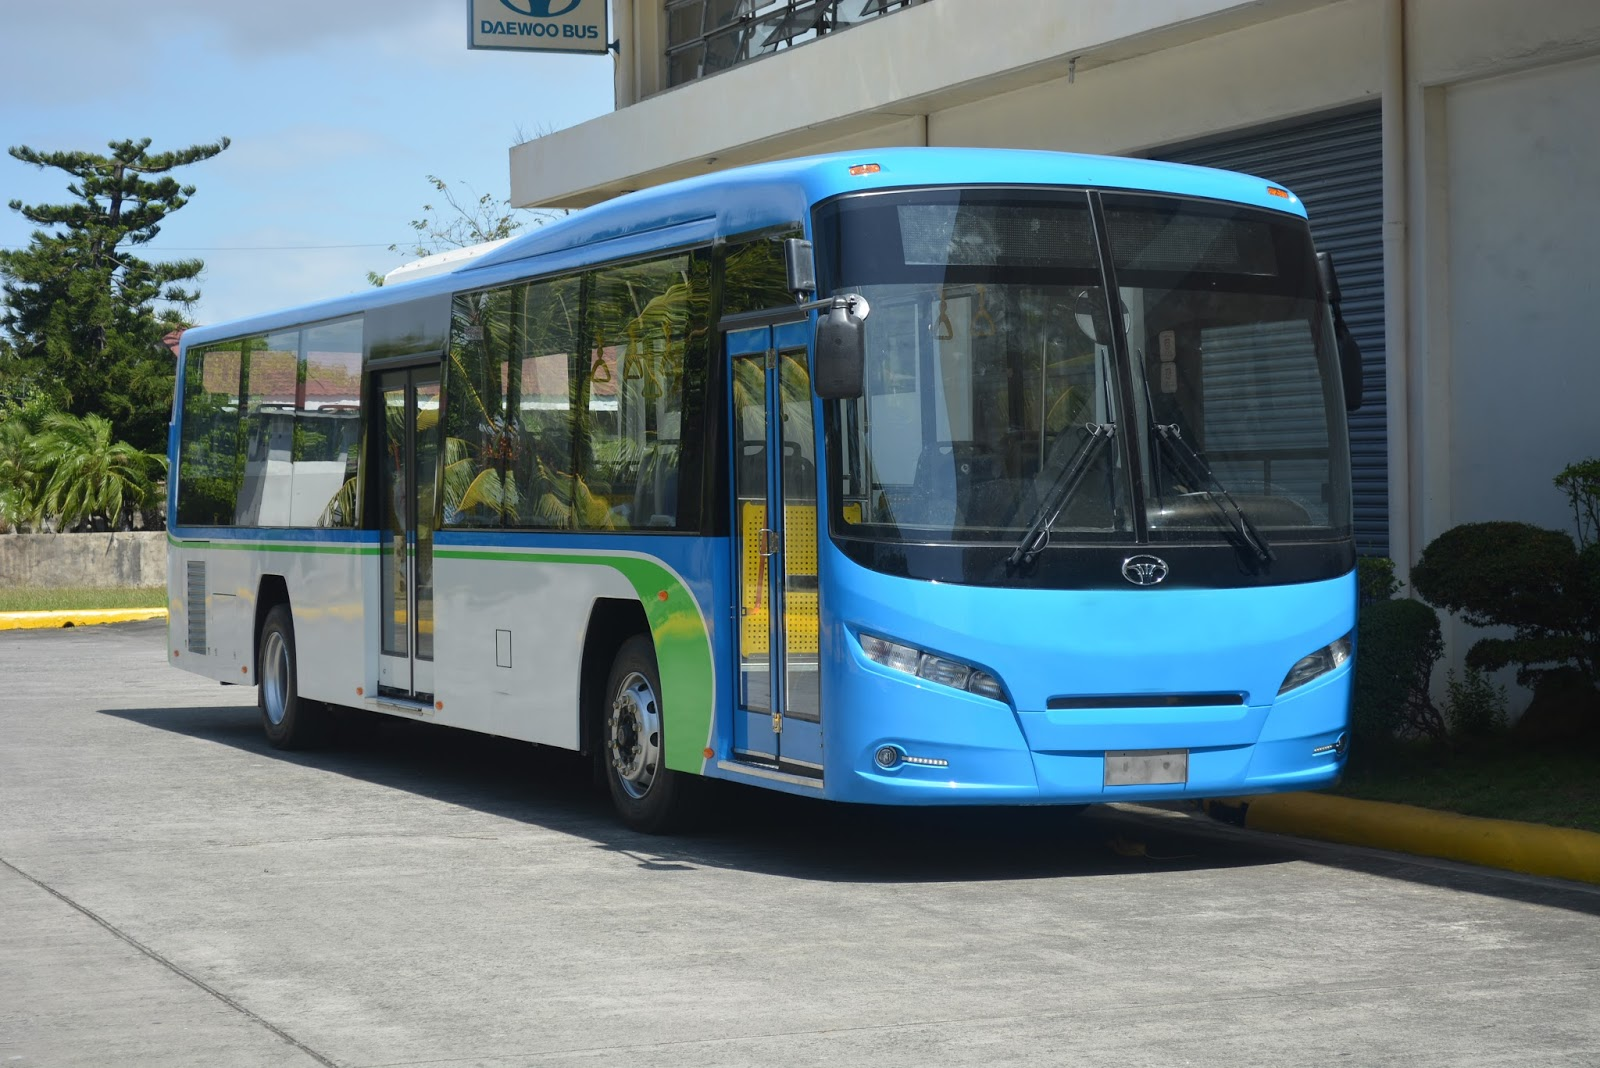 medium resolution of steering the future proudly pinoy made new daewoo low floor bus redefines public transportation